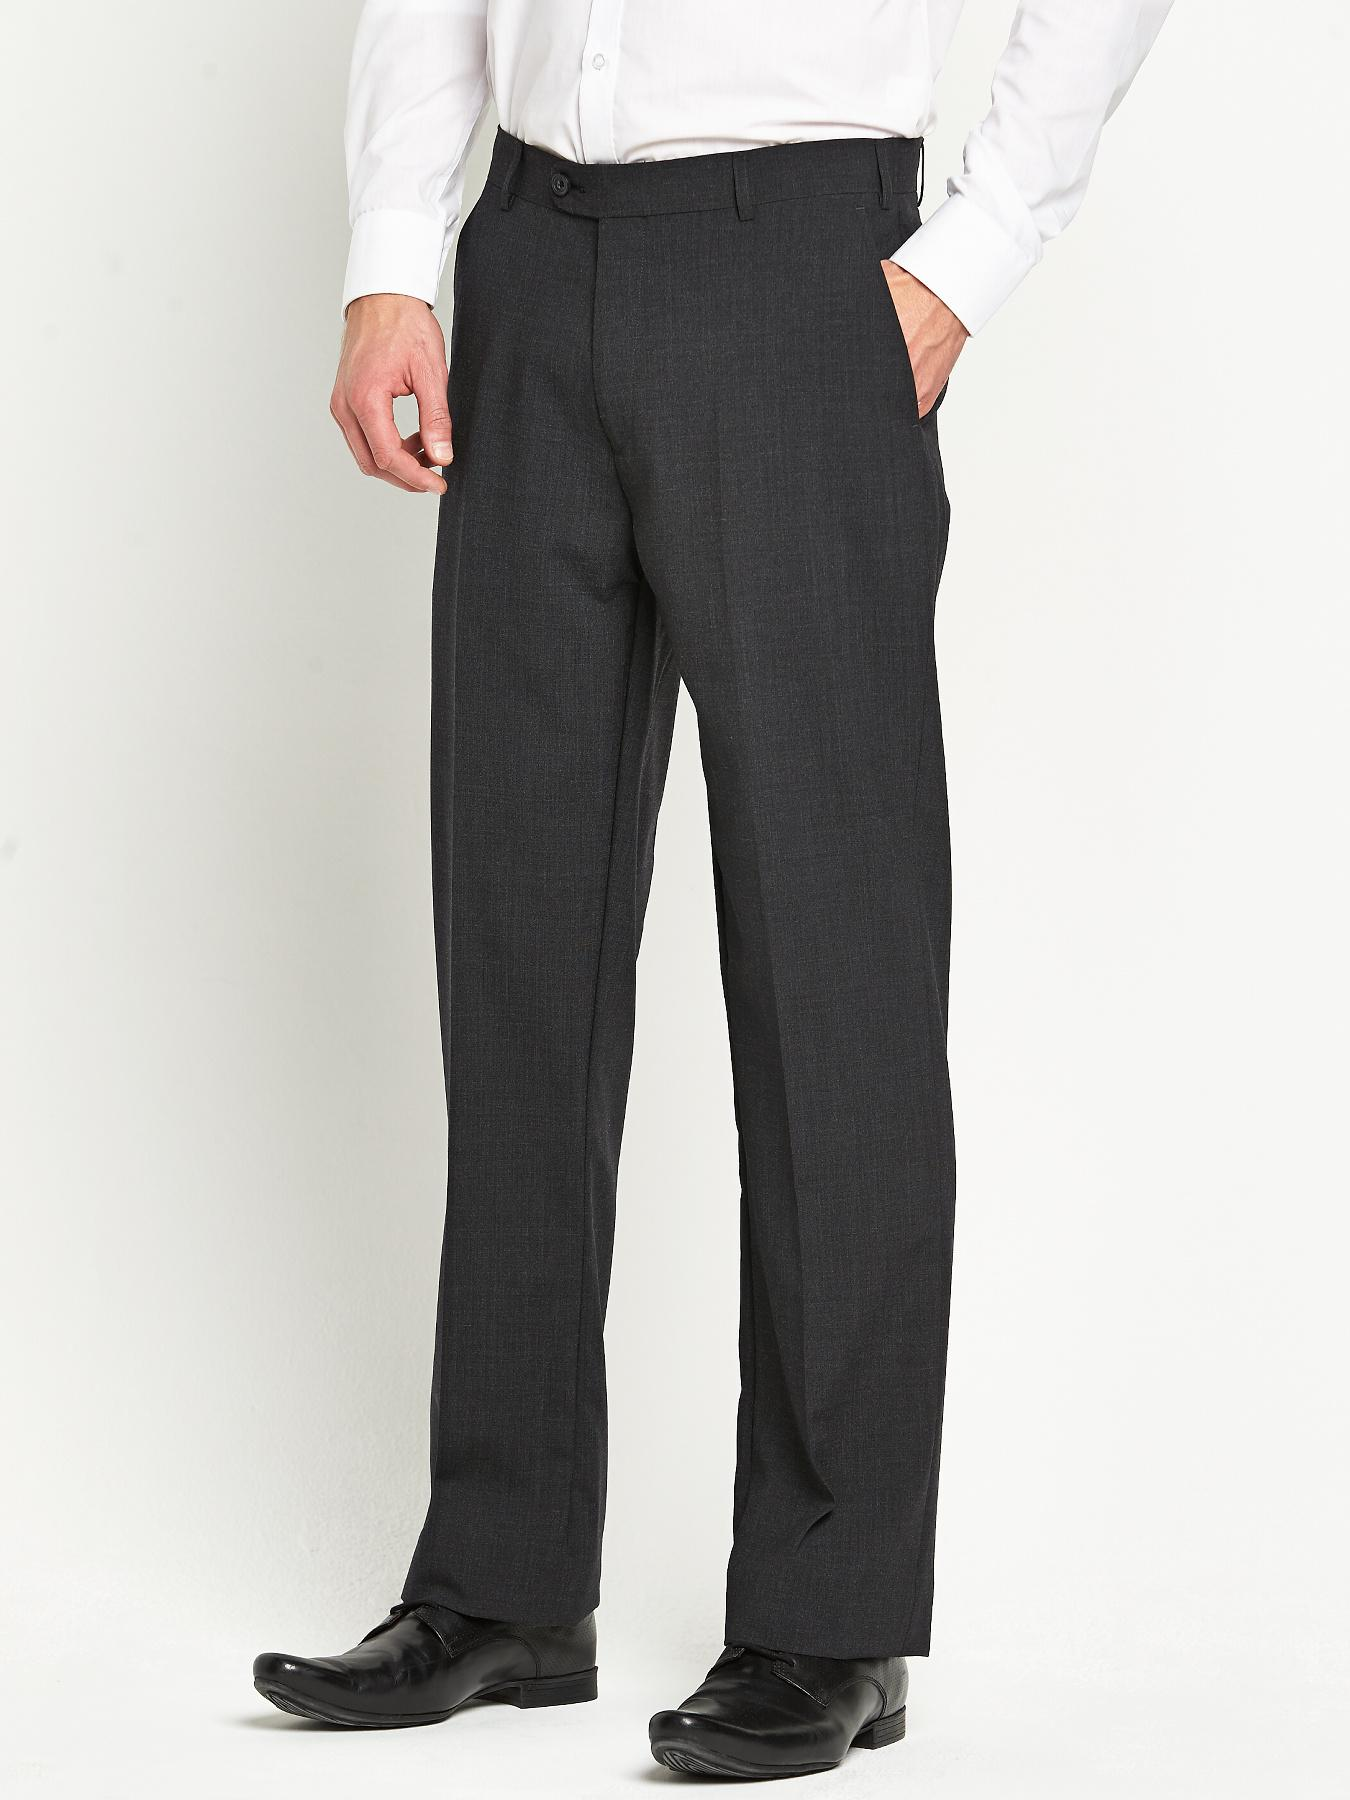 Skopes Mens Ohio Suit Trousers - Charcoal - Charcoal, Charcoal